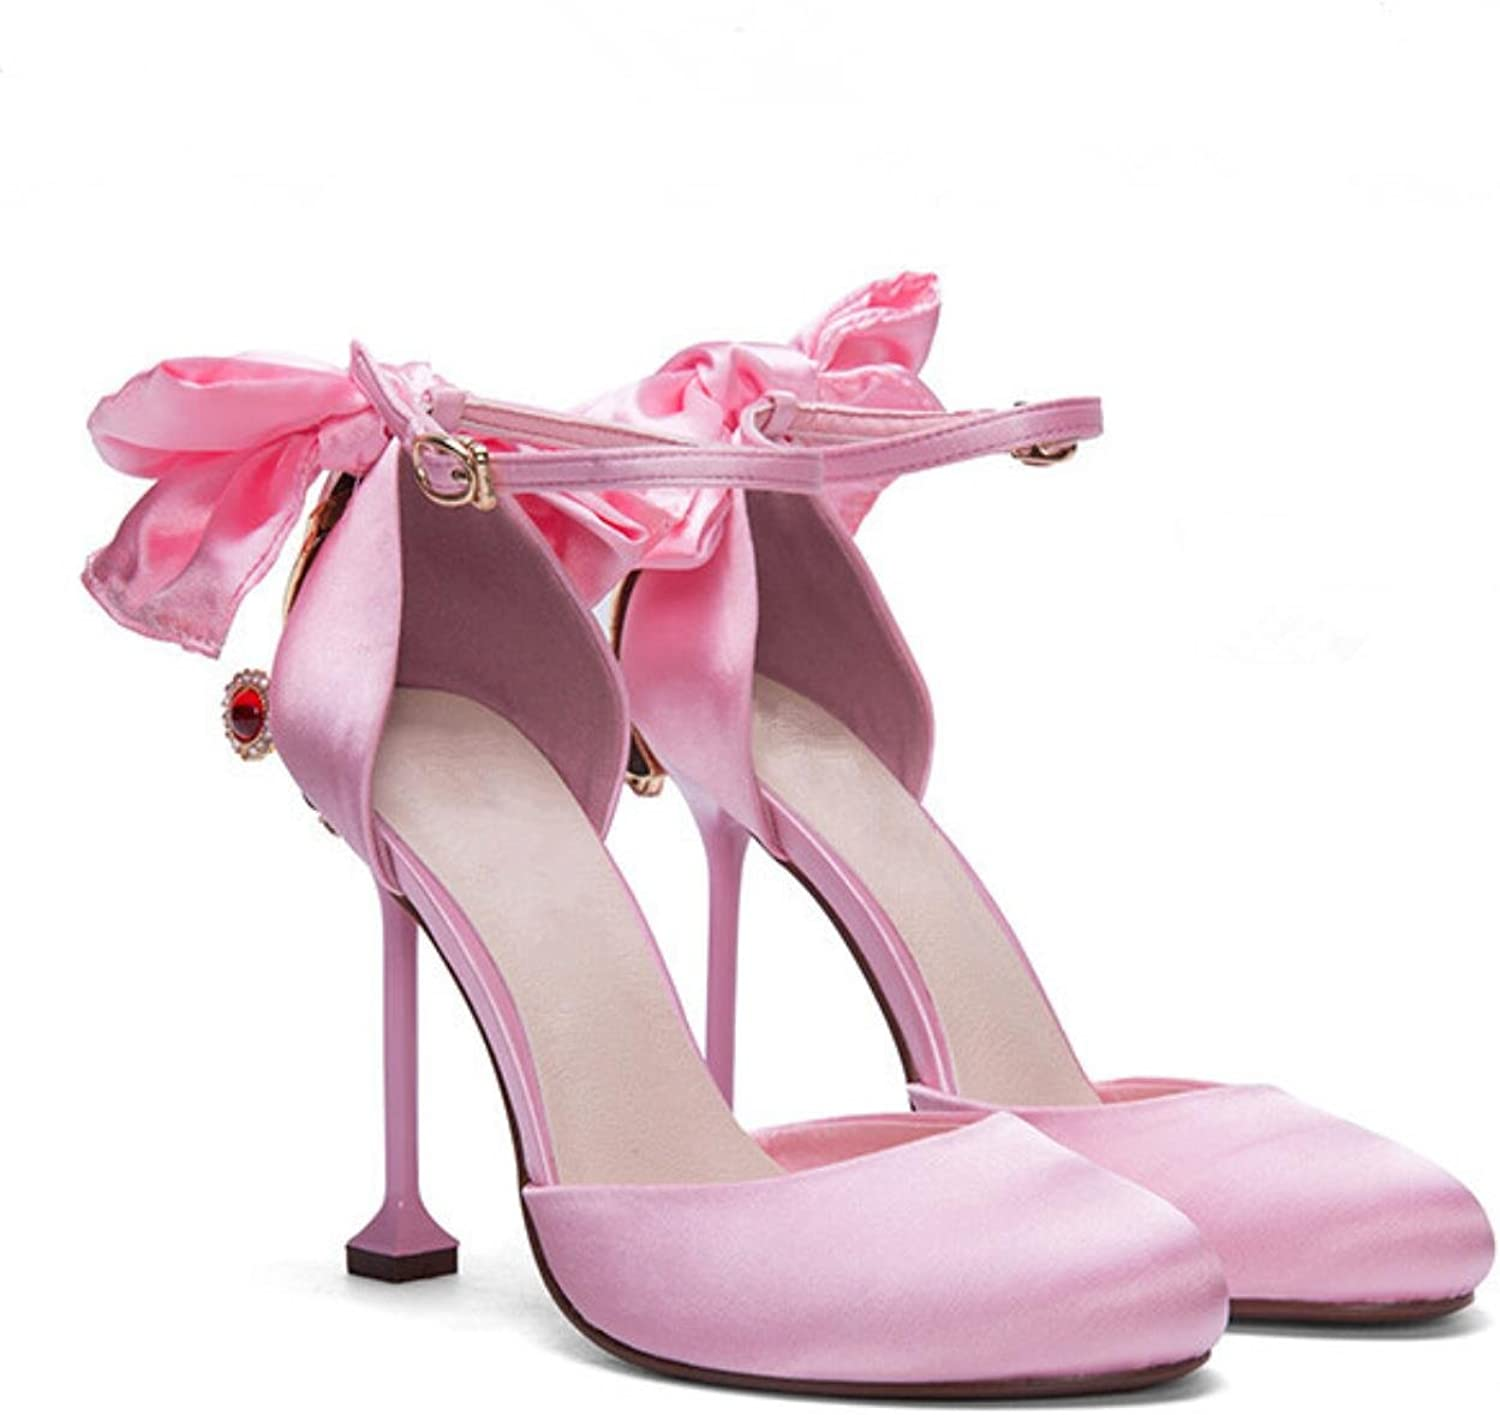 High Heels shoes Woman Luxury Wedding Sandals Sexy Women shoes Pink Butterfly-knot Sandals